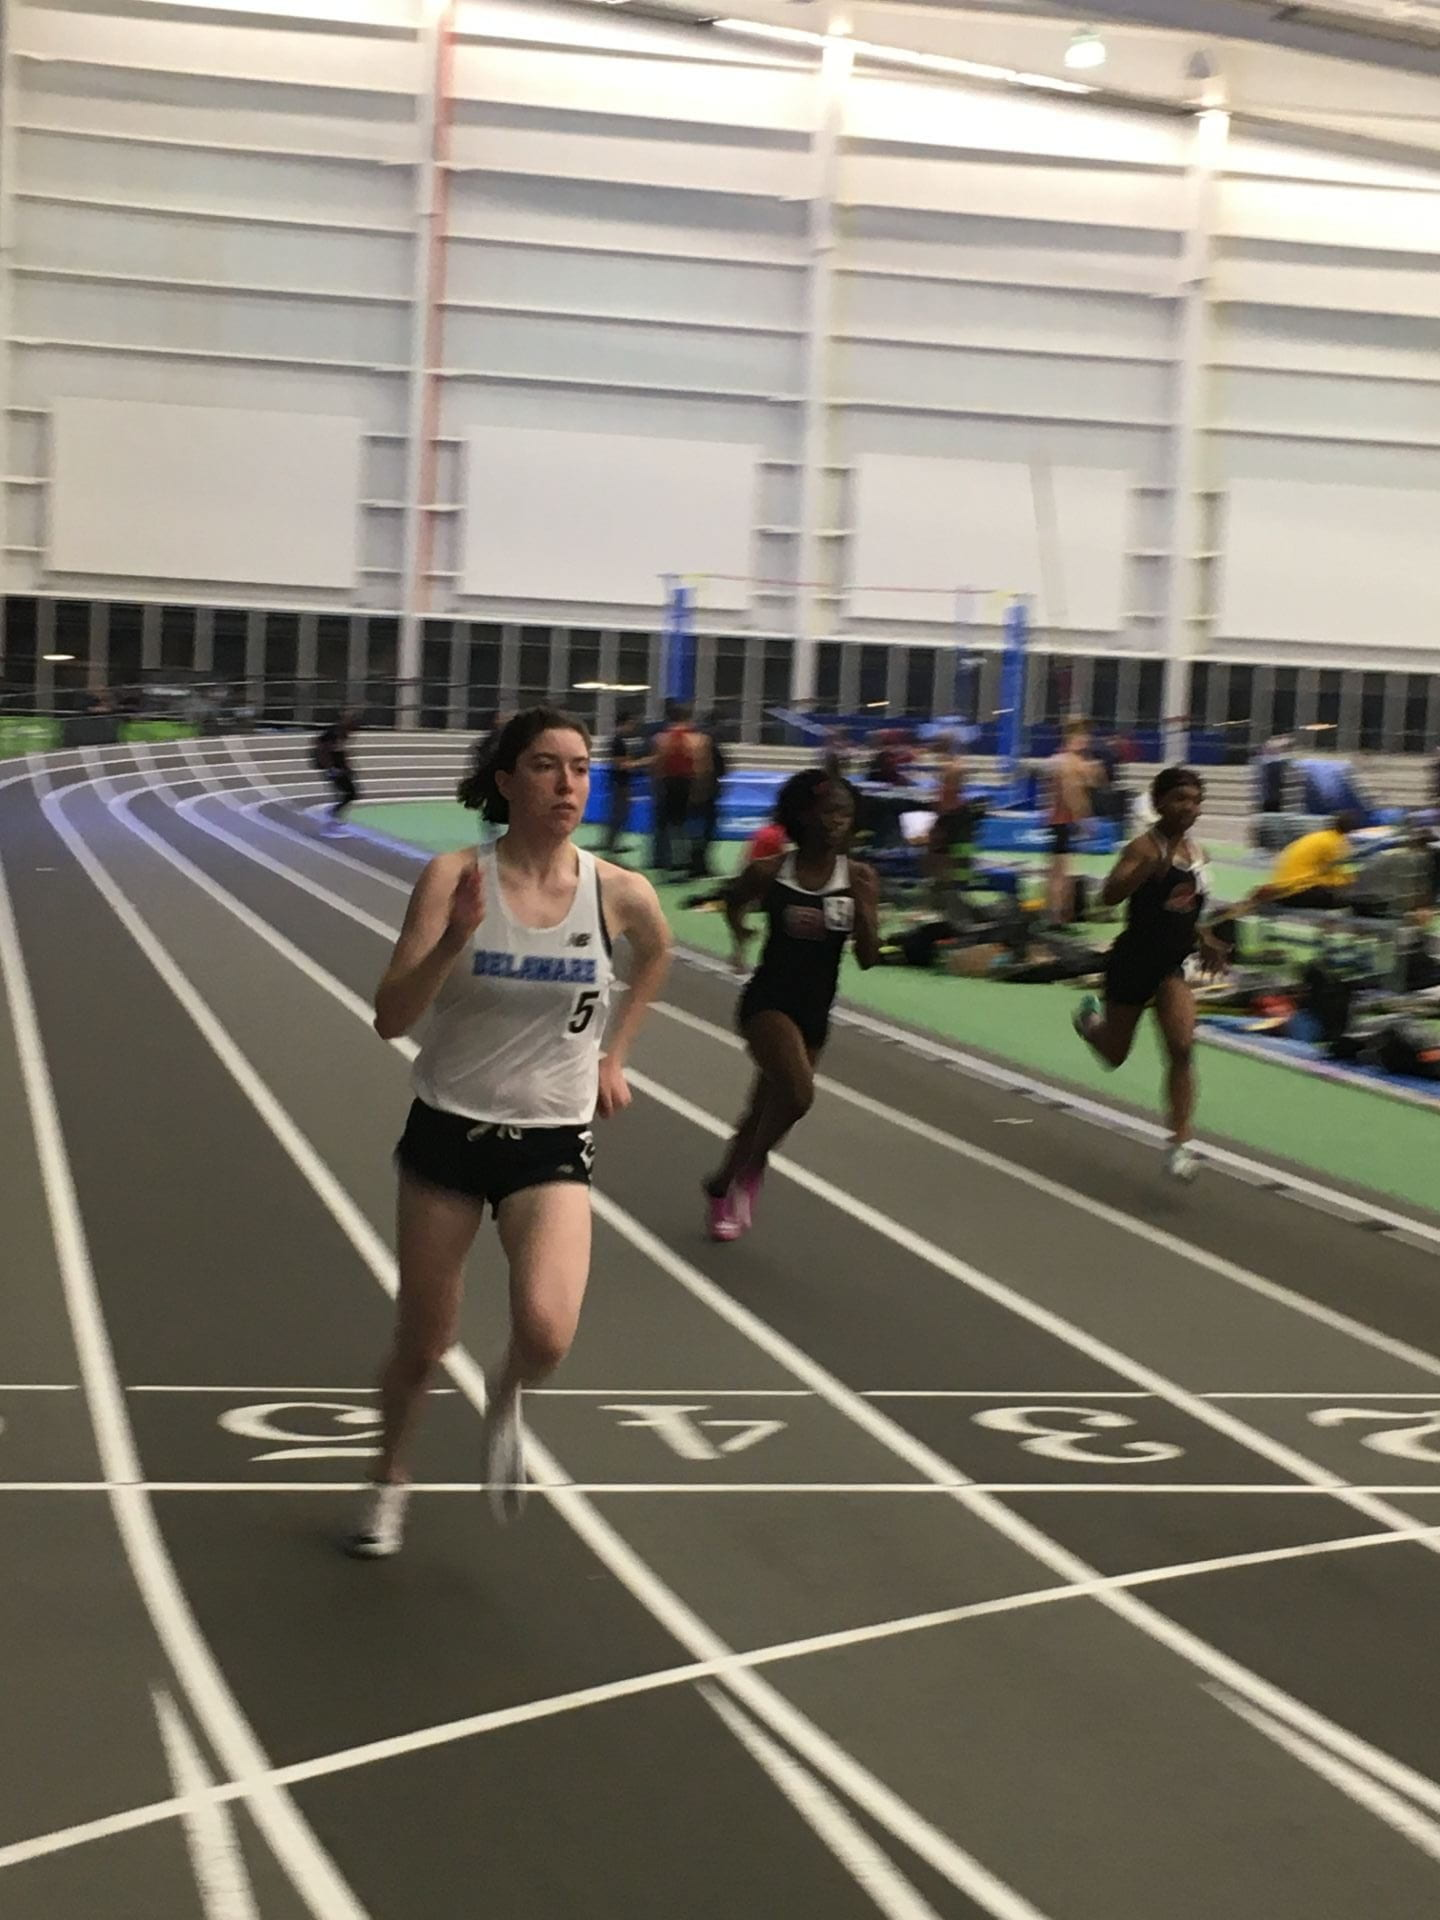 Cassidy McCormick dominated both the women's 400 and 800 for UDXC